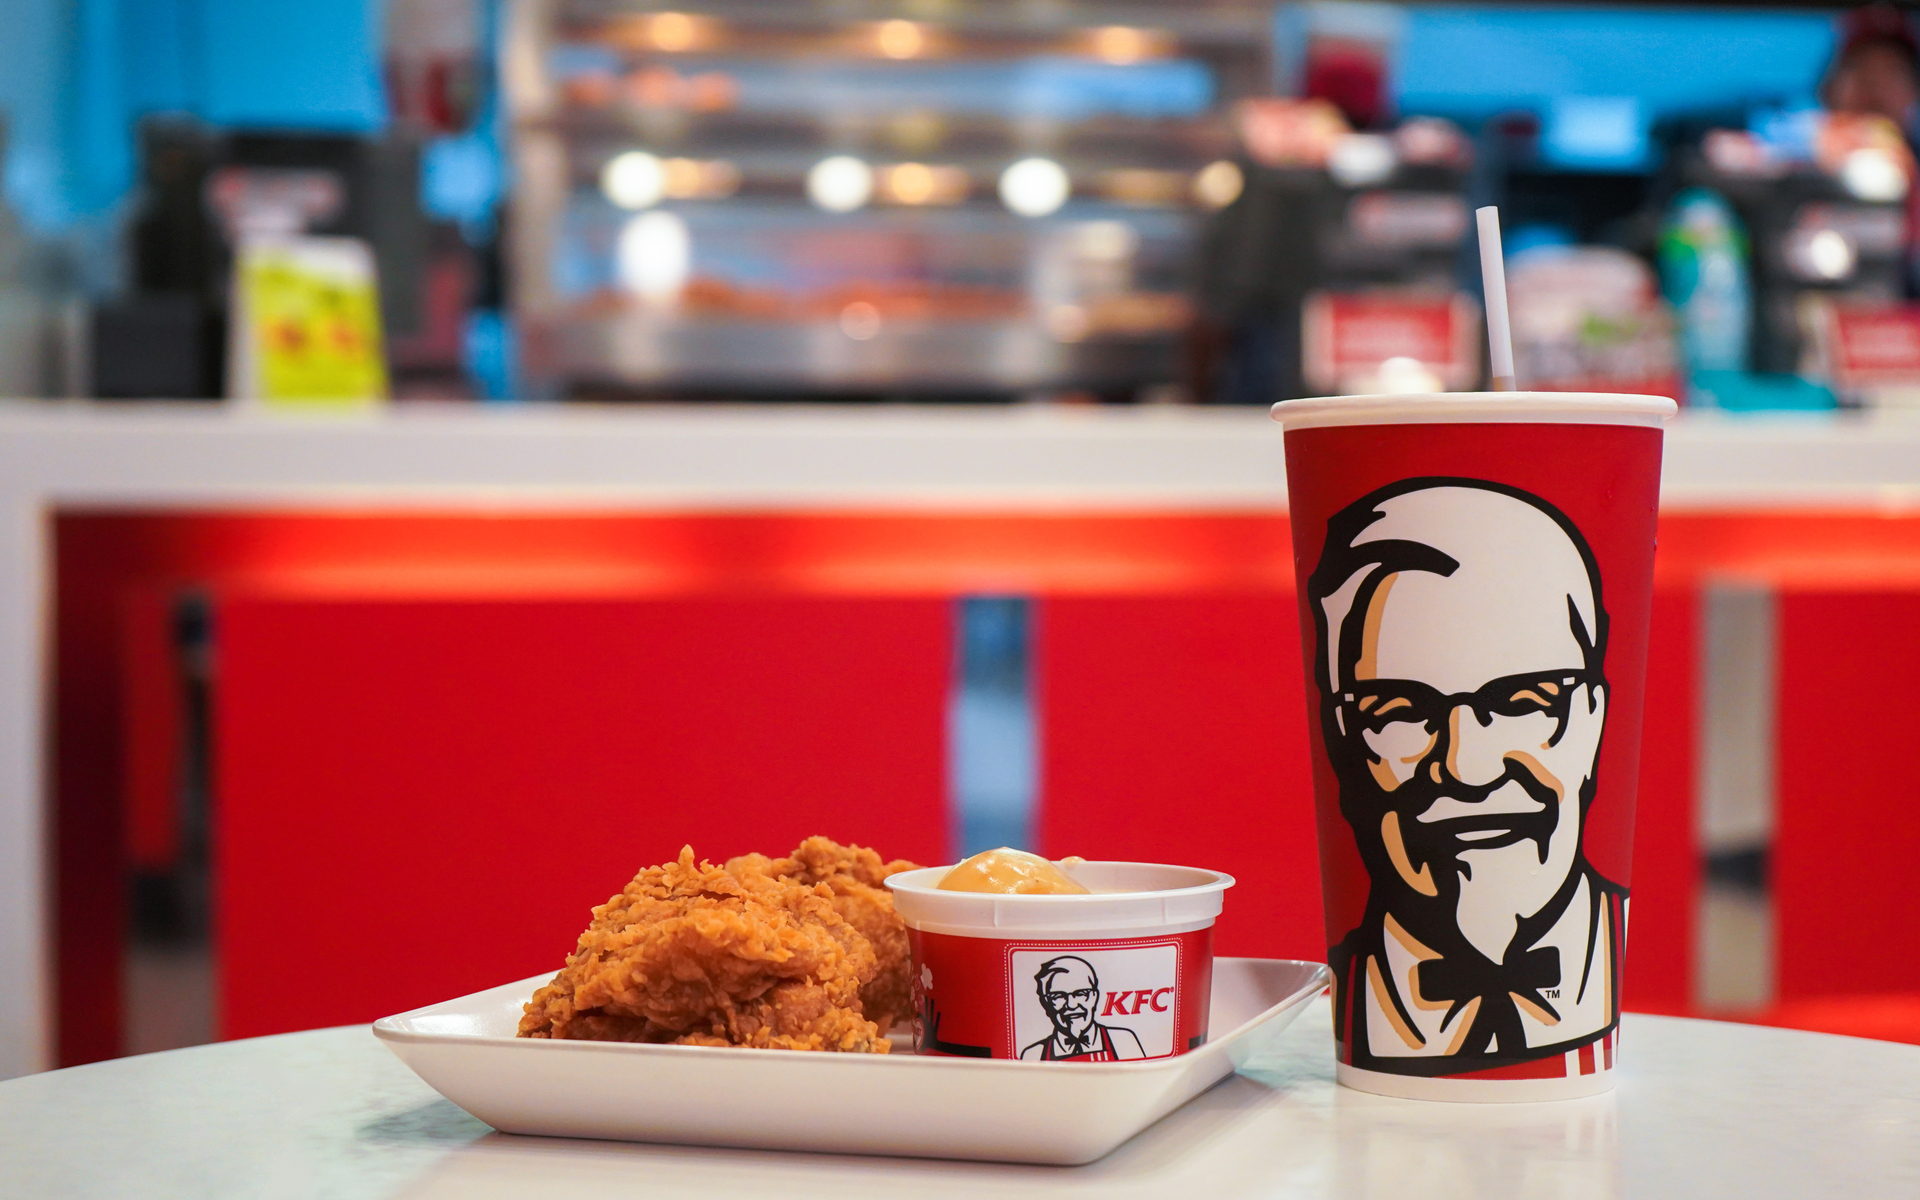 Meet the KFC Worker Who Ran a Bitcoin Drug Empire From His Attic